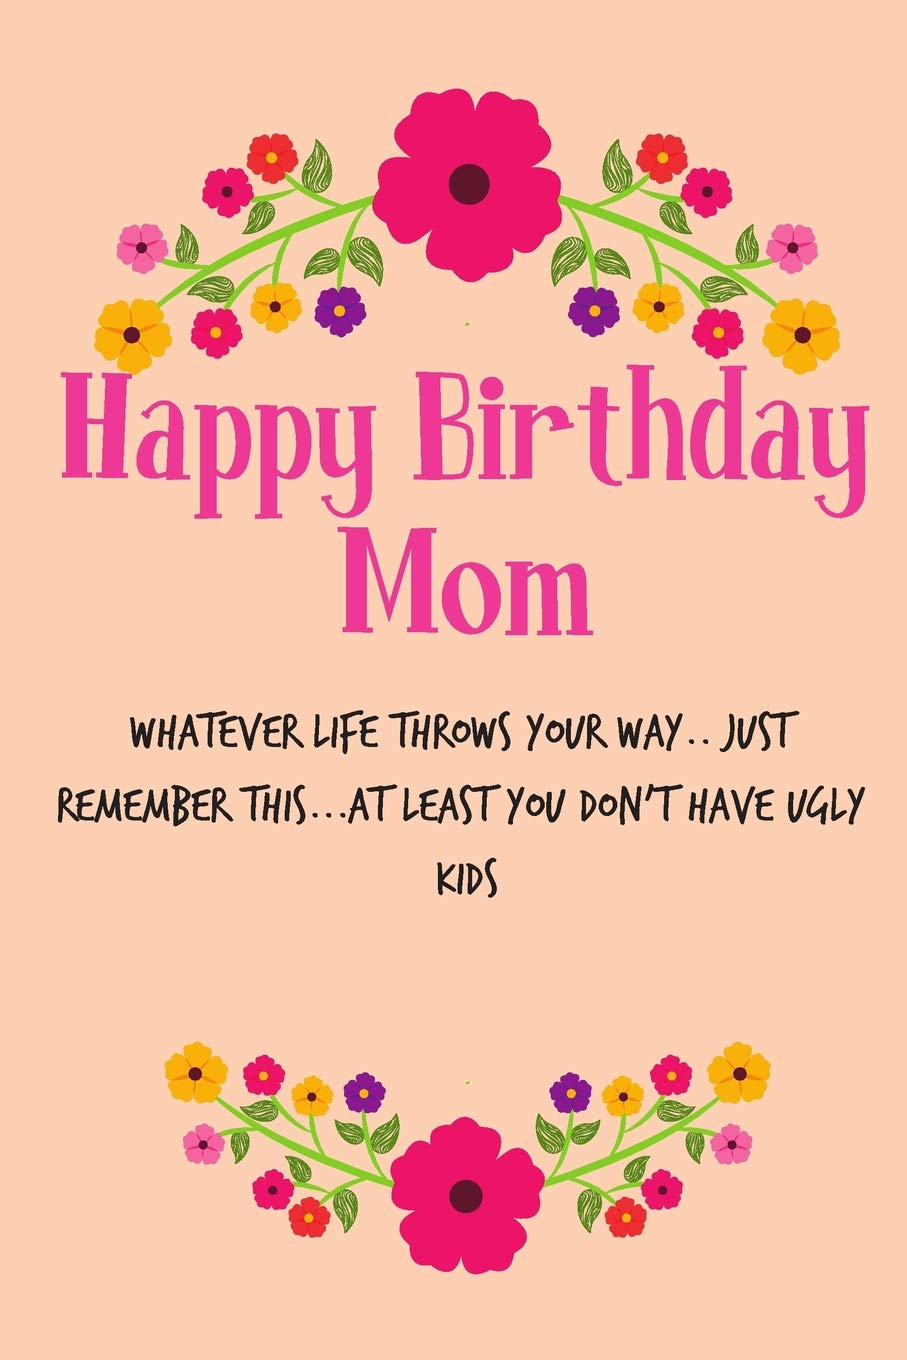 Happy Birthday Mom Whatever Life Throws Your Way Floral Notebook For Mother From Us Kids Child Daughter Son Stepchild Funny Gag Cheeky Joke